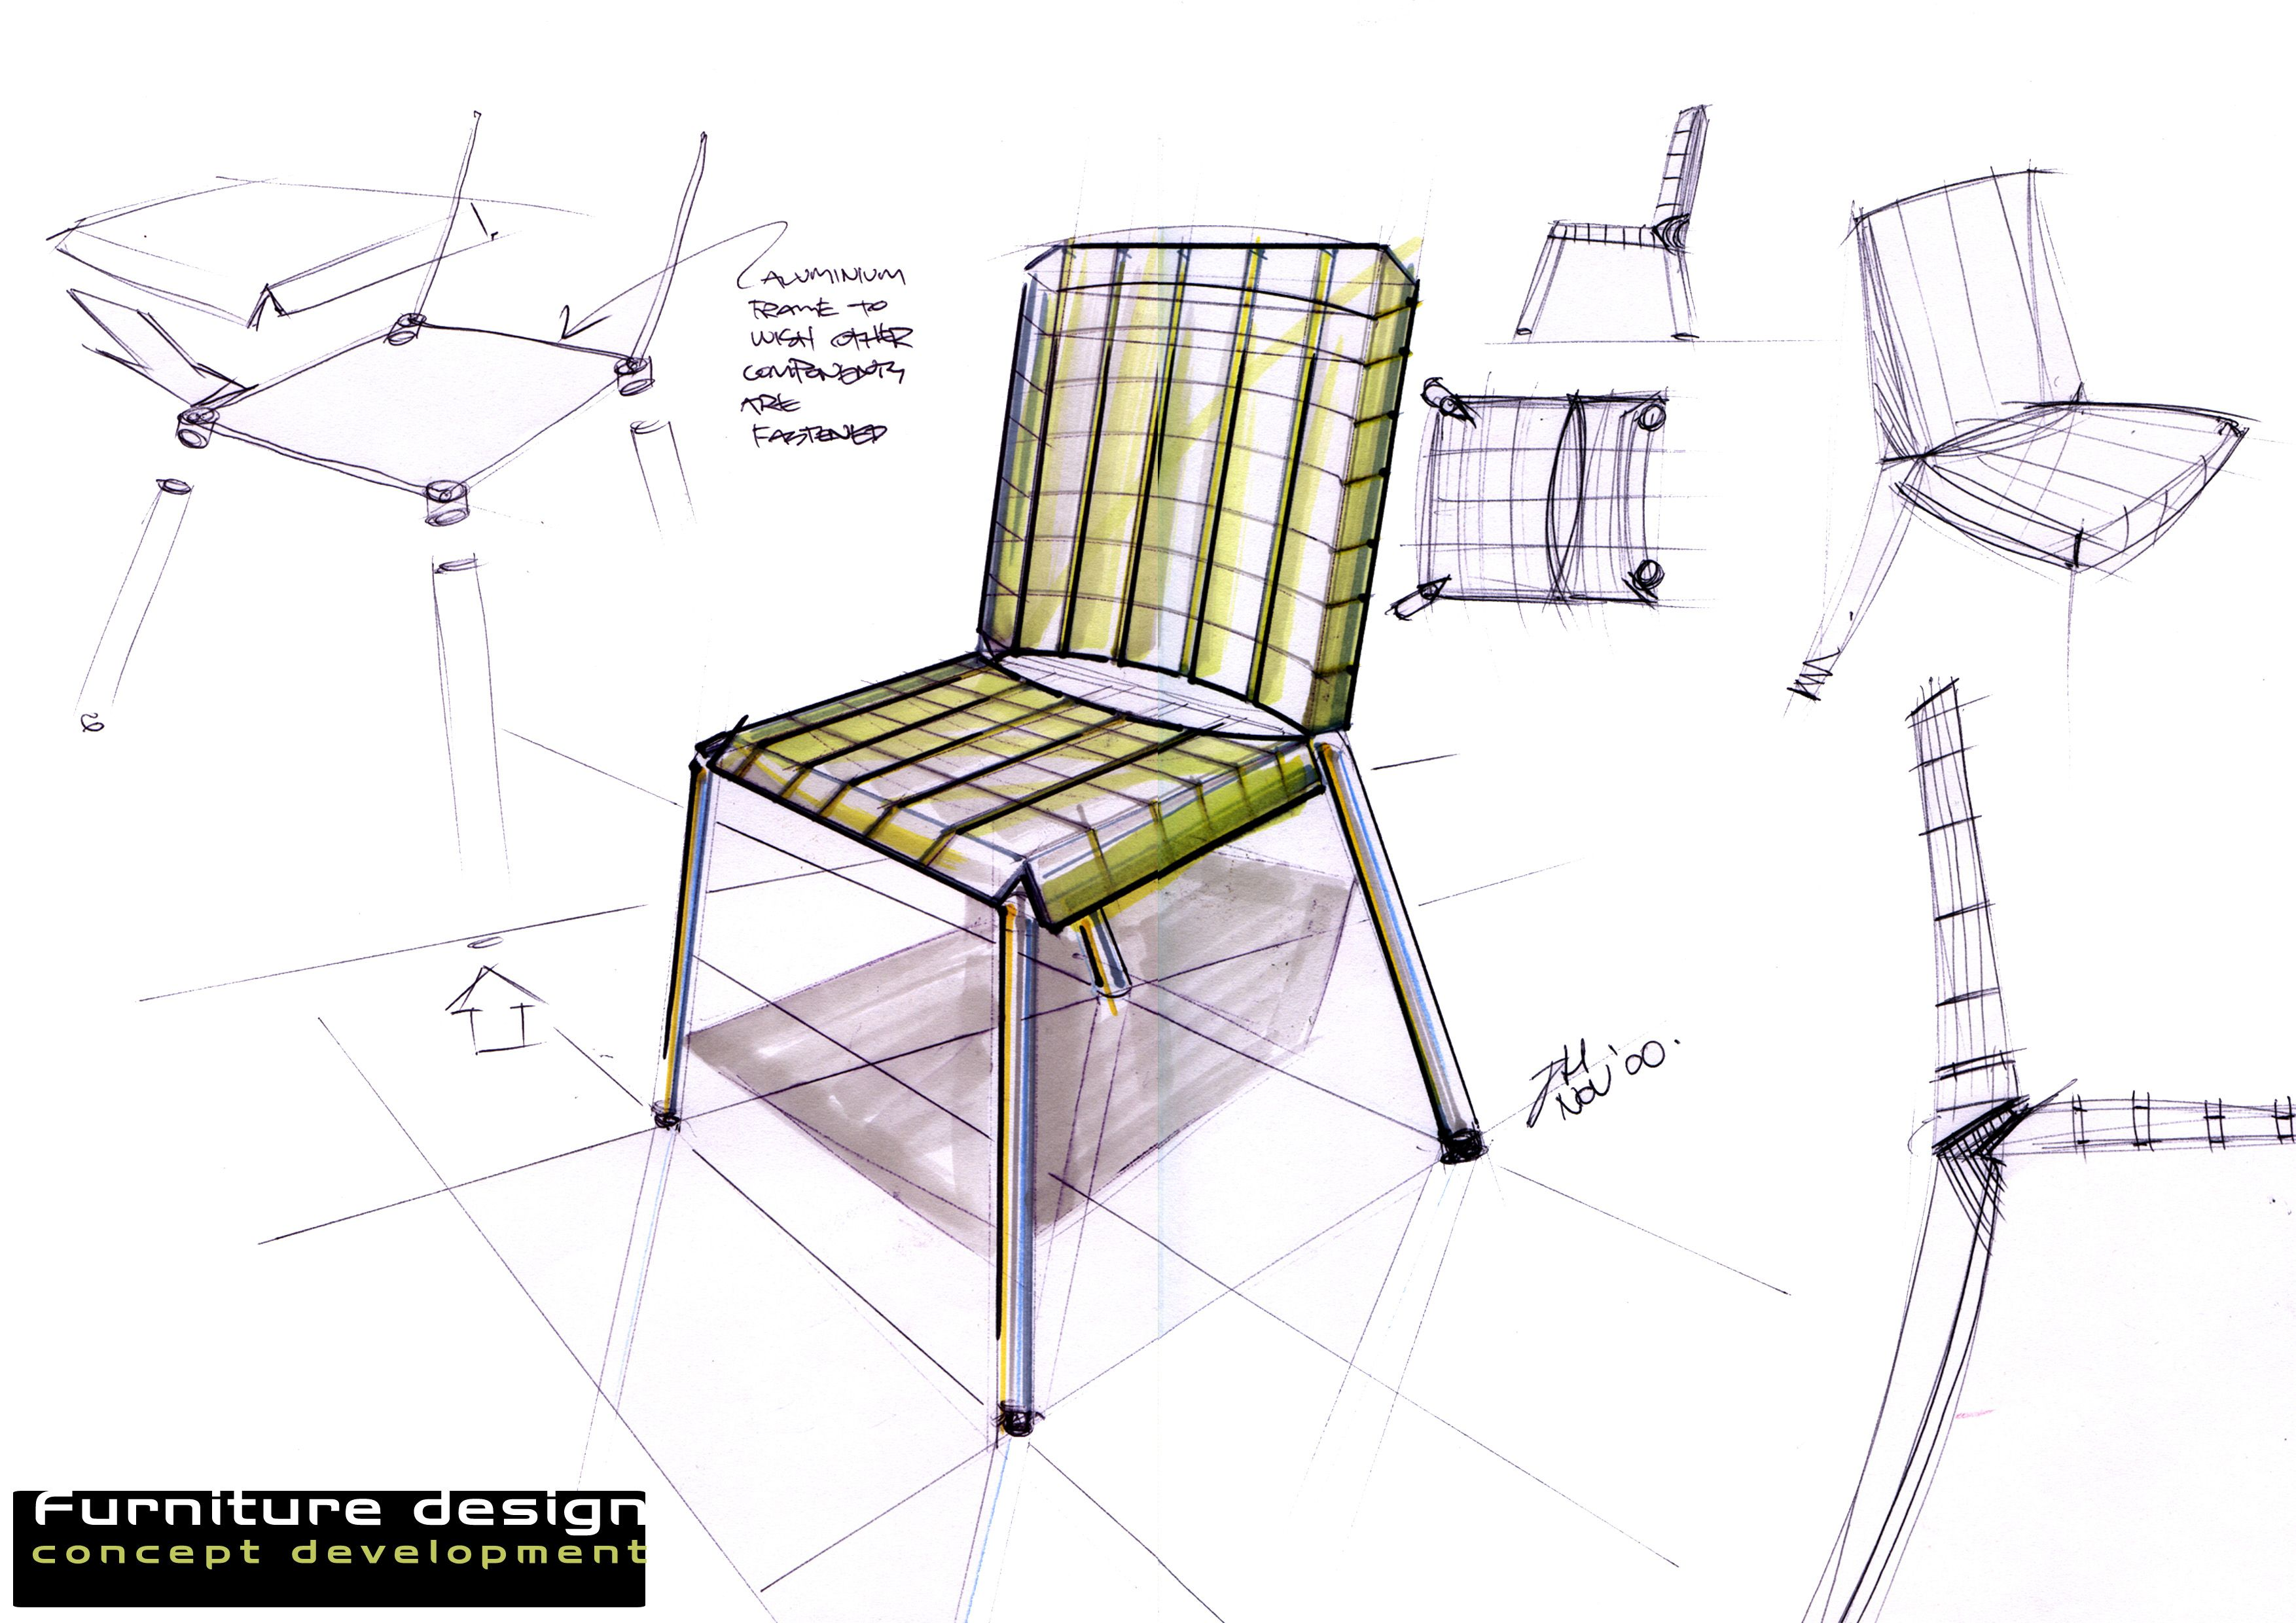 chair design online stretch slipcovers furniture drawing at getdrawings free for